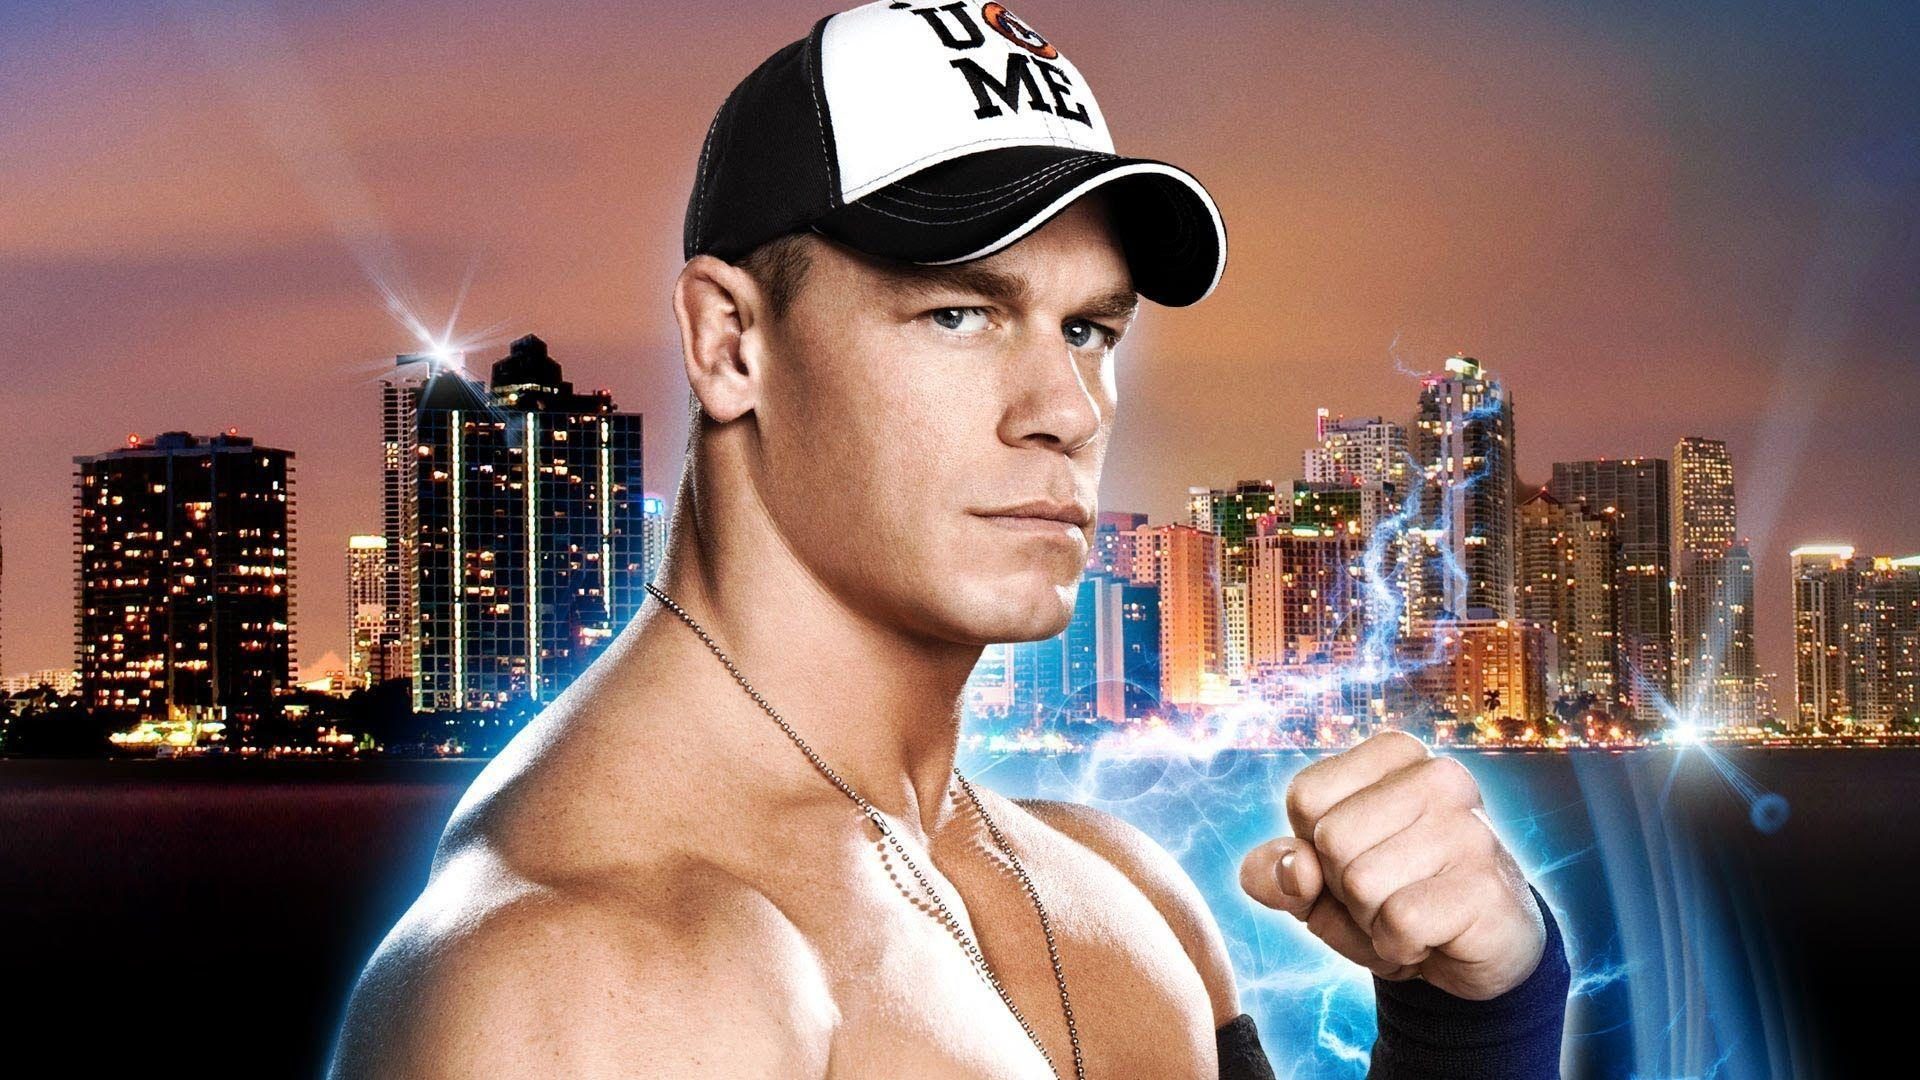 John Cena New HD Wallpapers 1920x1080